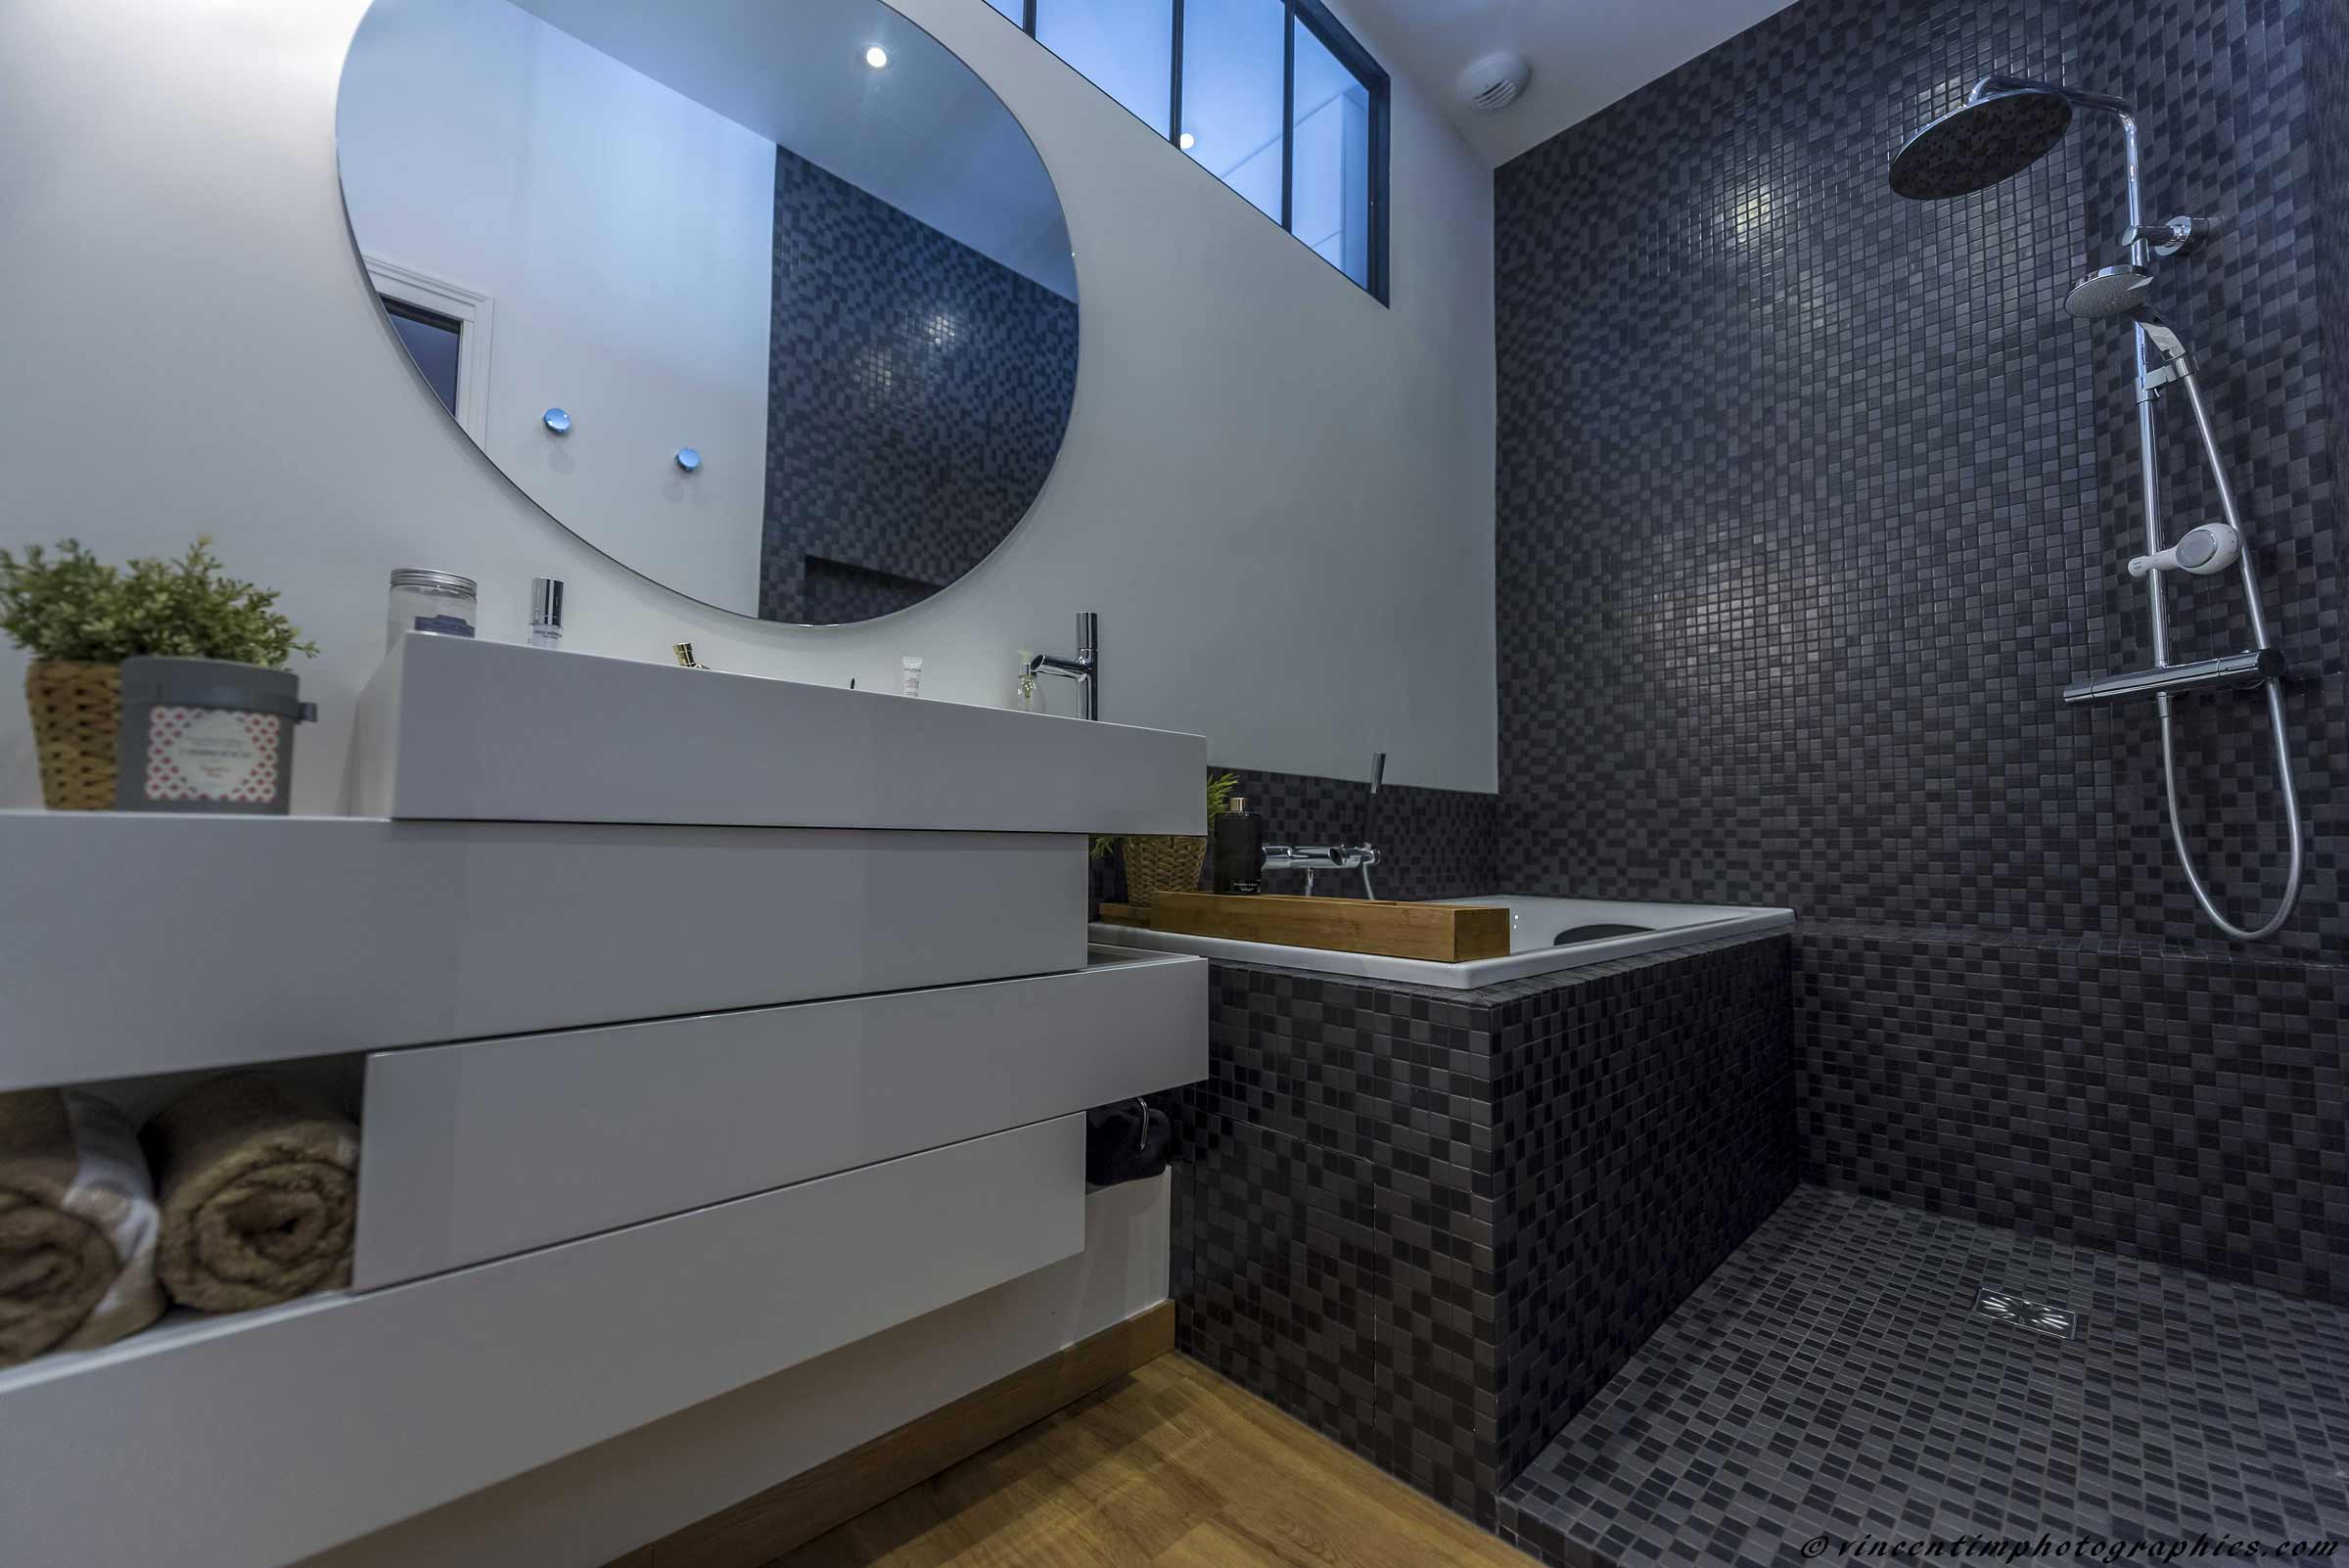 renovation salle de bain italienne retro douche mosaique lavabo baignoire ar interieur. Black Bedroom Furniture Sets. Home Design Ideas